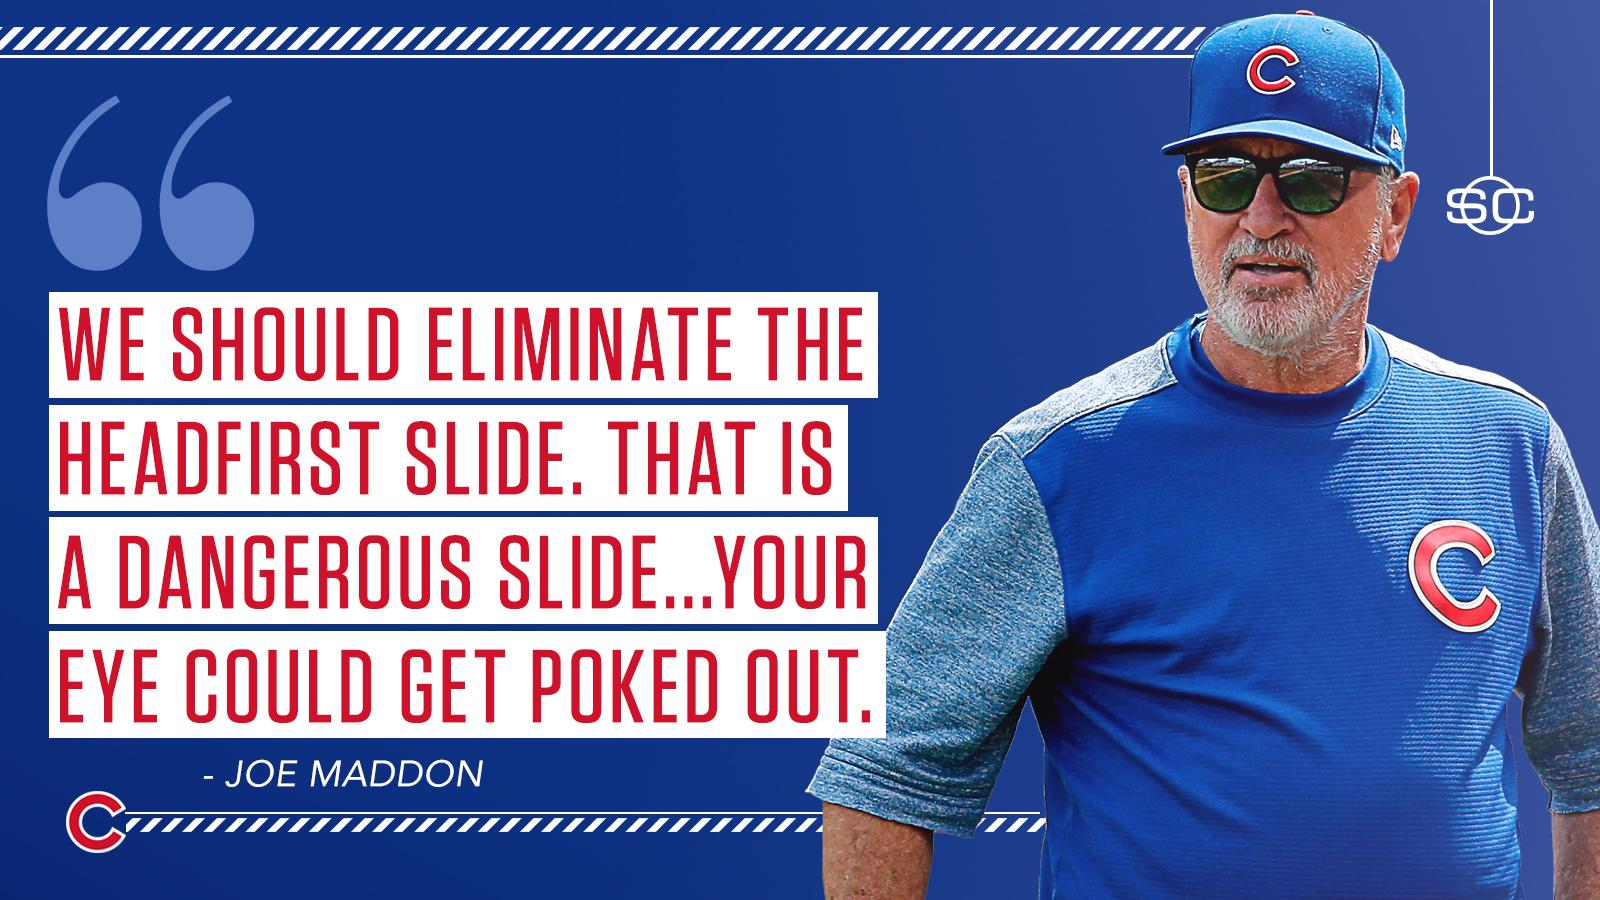 A sarcastic Joe Maddon has 'ideas' for safer slide rules.  More: https://t.co/MVHu8TRKZ2 https://t.co/81YPnxZgXk